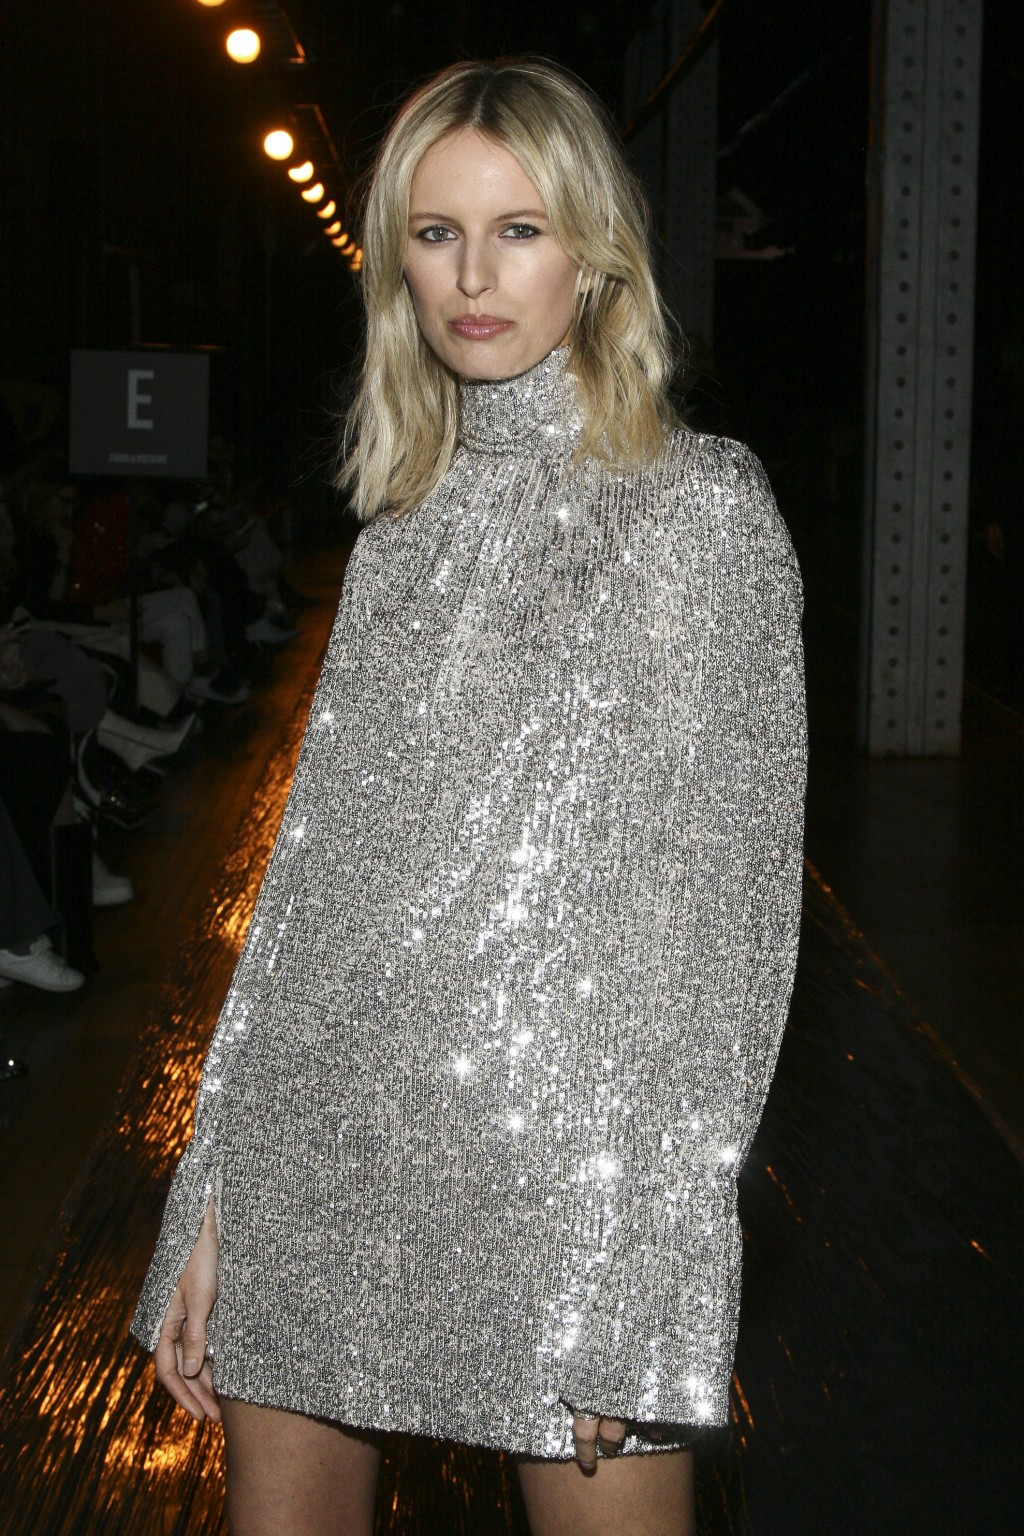 Karolina Kurkova attends the NYFW Fall/Winter 2019 Zadig & Voltaire fashion show at The Tunnel on Monday, Feb. 11, 2019, in New York. (Photo by Andy K...